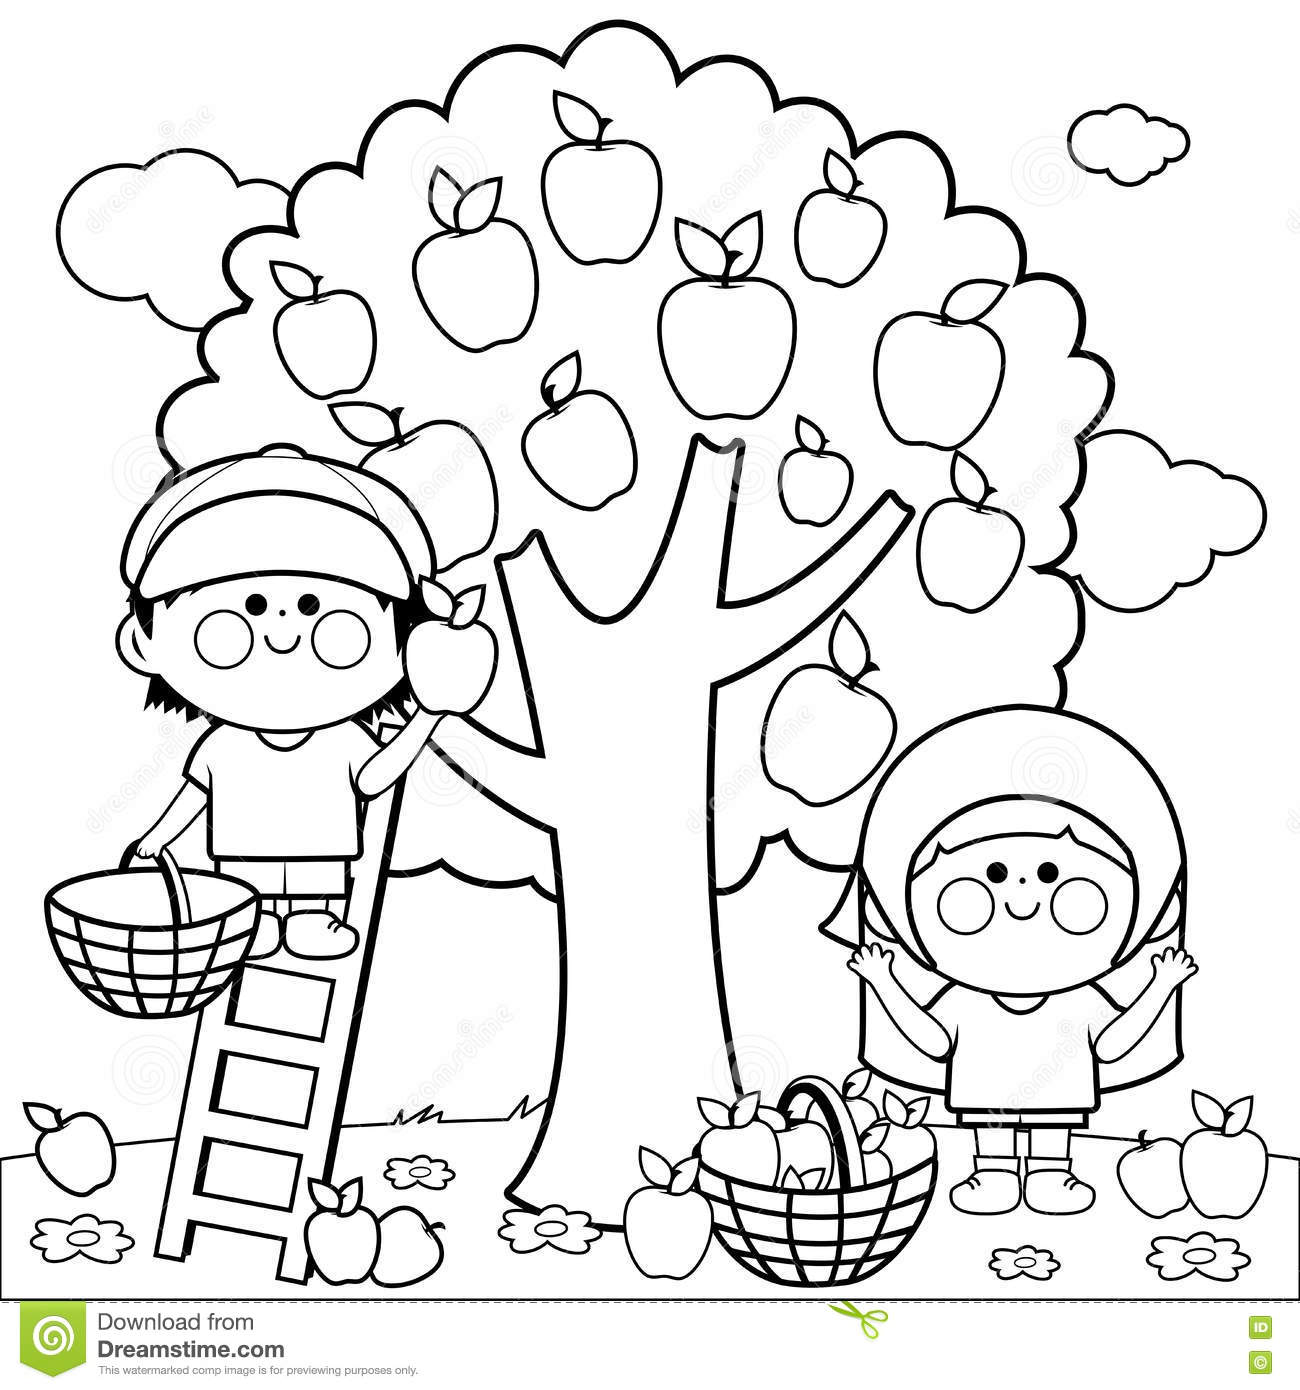 Royalty Free Vector Download Children Harvesting Apples Coloring Book